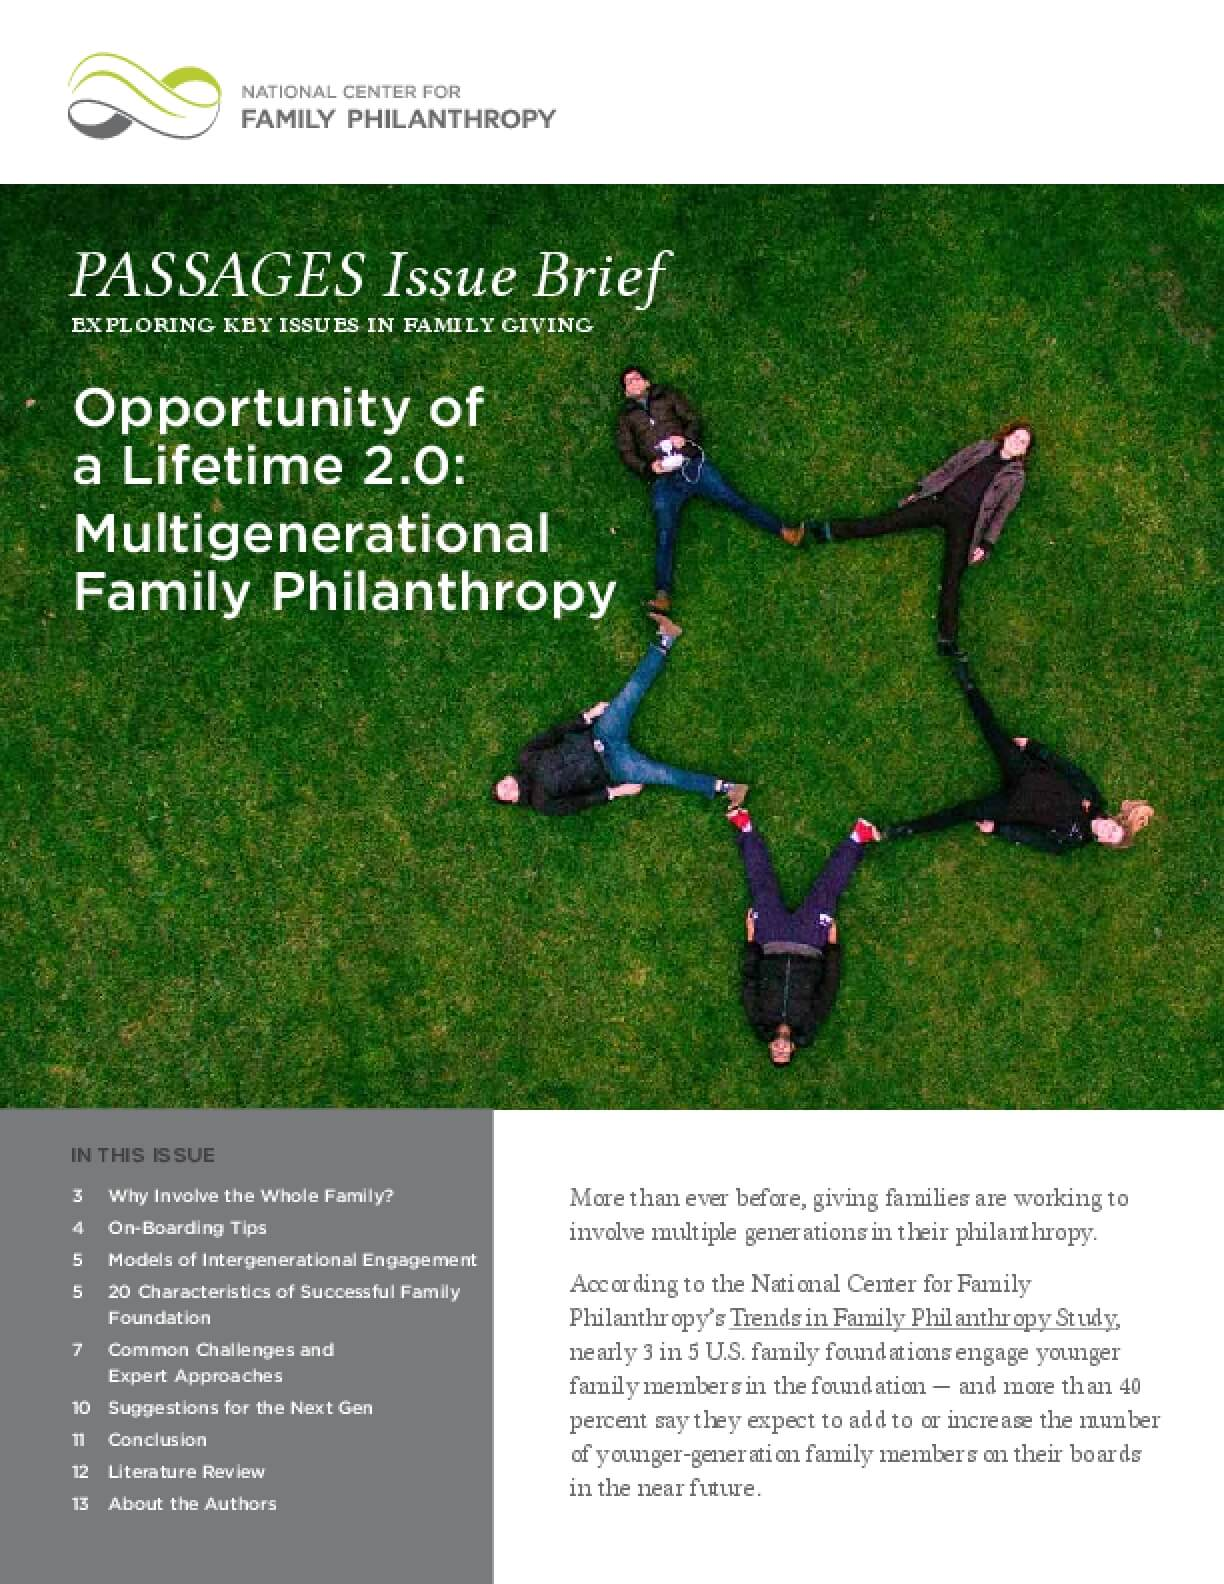 Opportunity of a Lifetime 2.0: Multigenerational Family Philanthropy